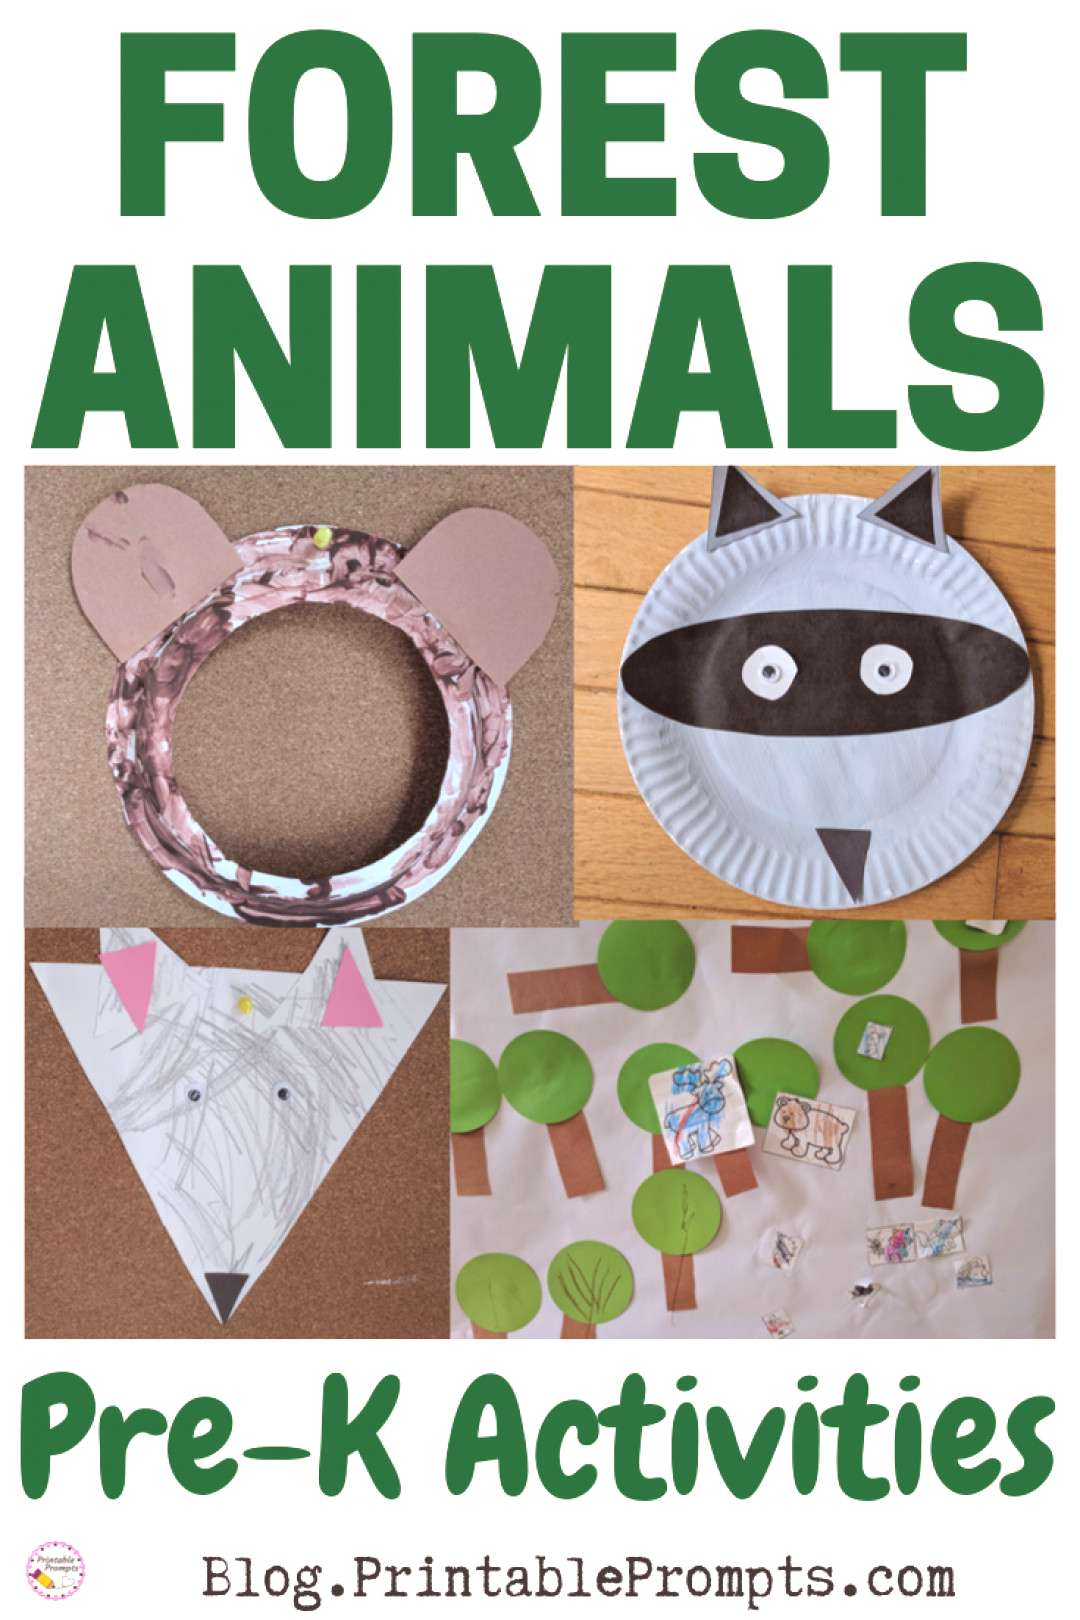 Preschool Forest Animal Activities - Mountains and Forests